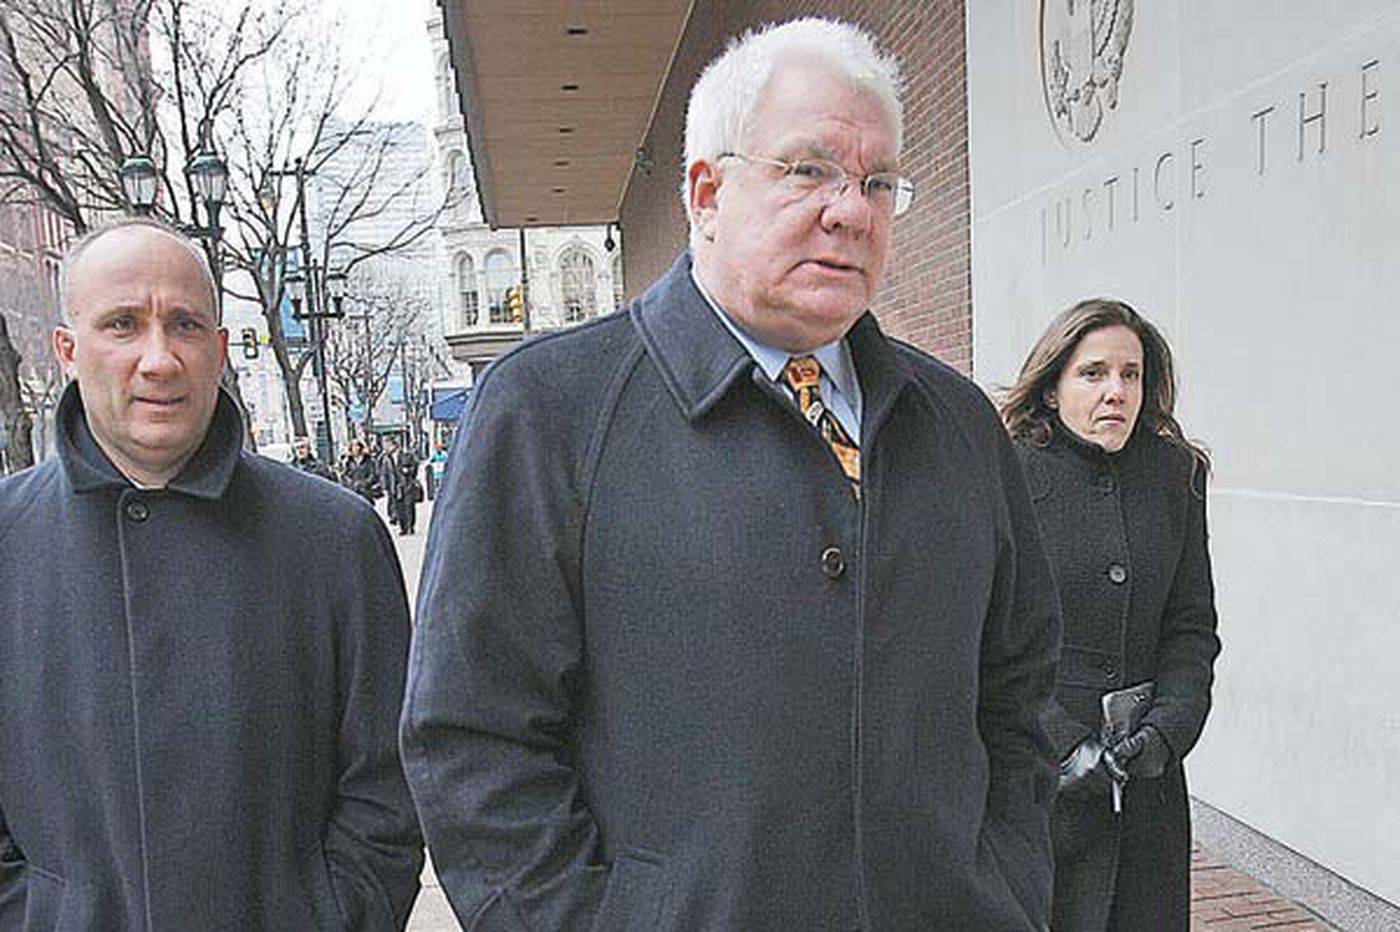 Mistrial for Ligambi in Philly mob trial, three men convicted, one acquitted